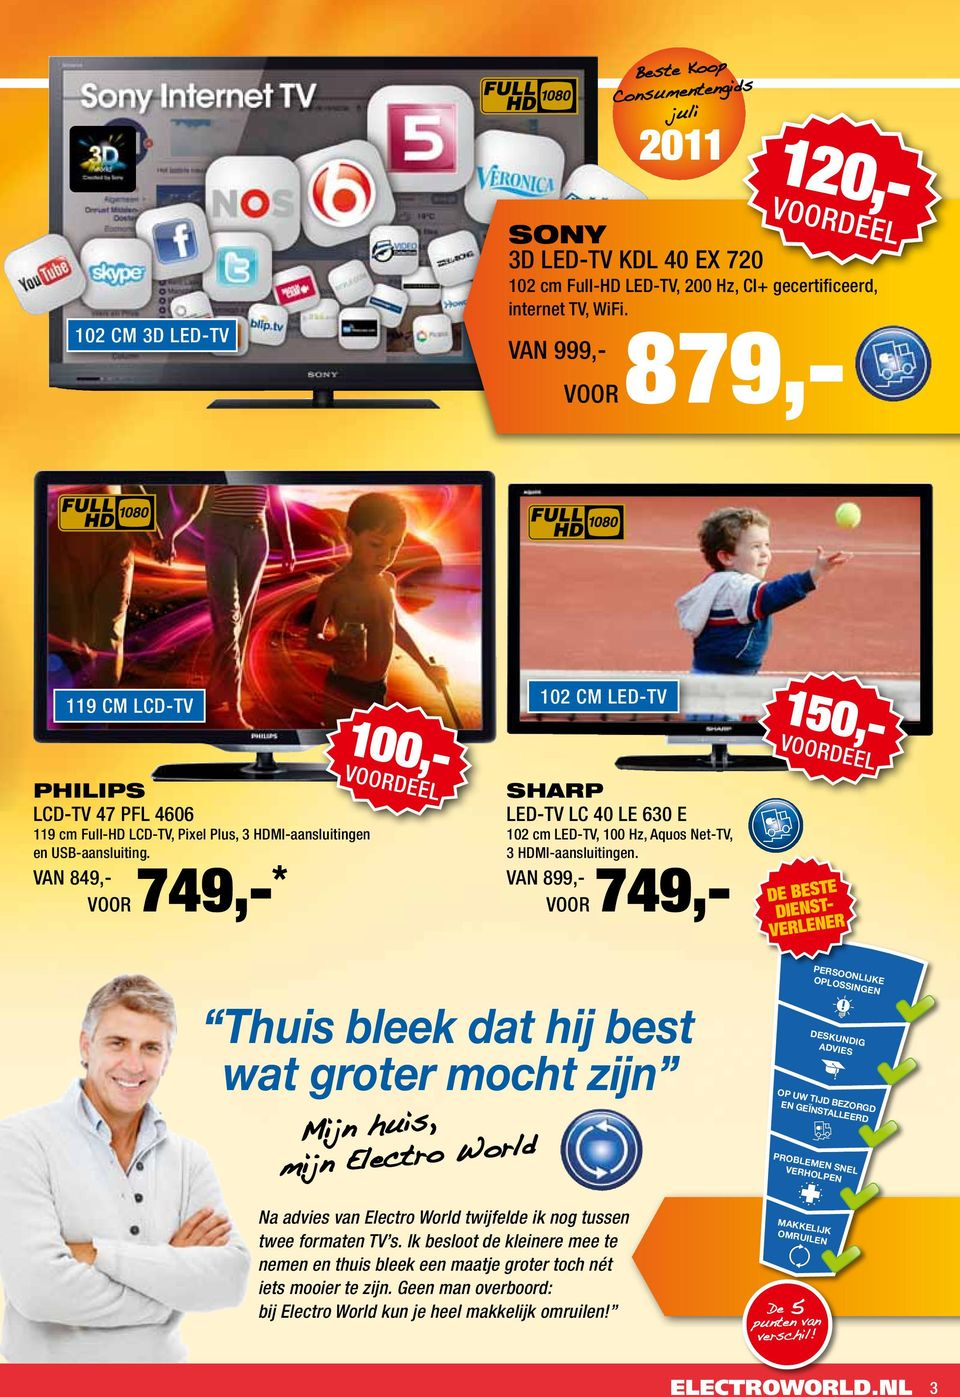 VAN 849,- VOOR 749,- * 150,- 100,- 102 cm LeD-TV Sharp LED-TV LC 40 LE 630 E 102 cm LED-TV, 100 Hz, Aquos Net-TV, 3 HDMI-aansluitingen.